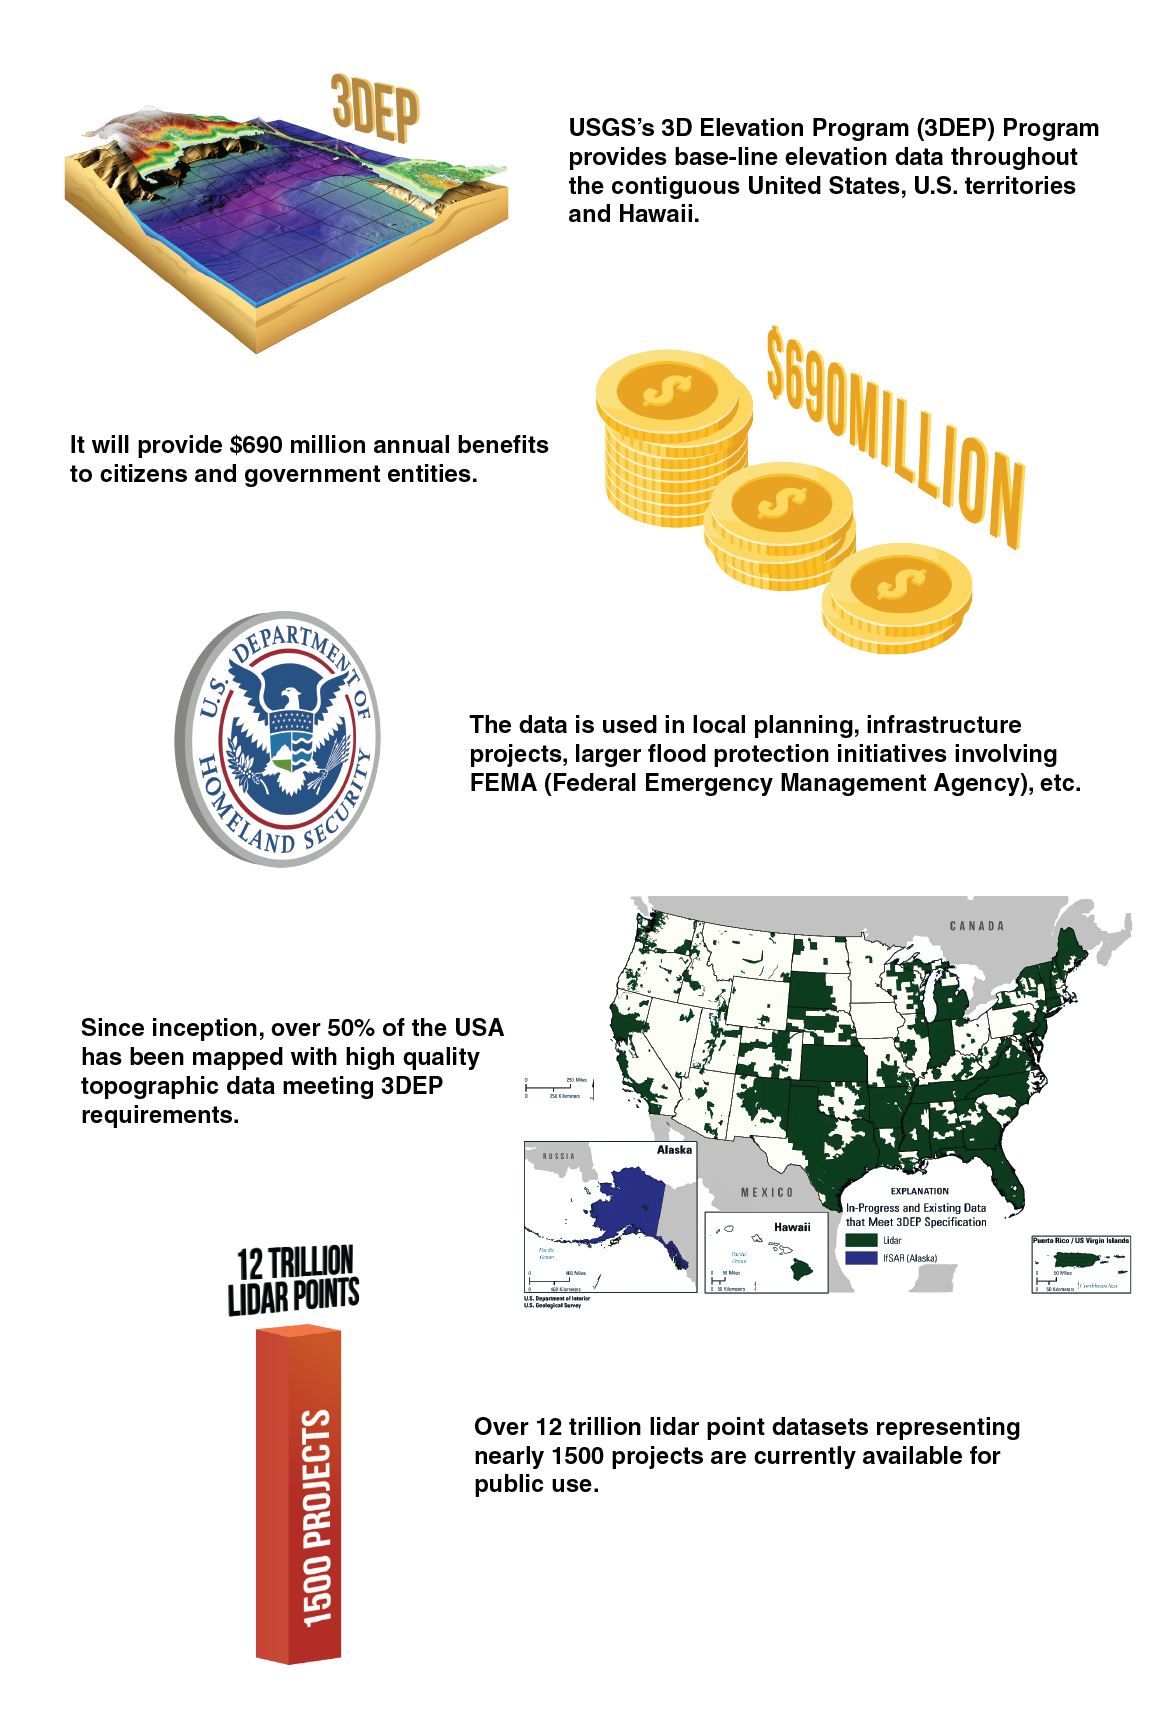 infographic that tells the USGS 3DEP program